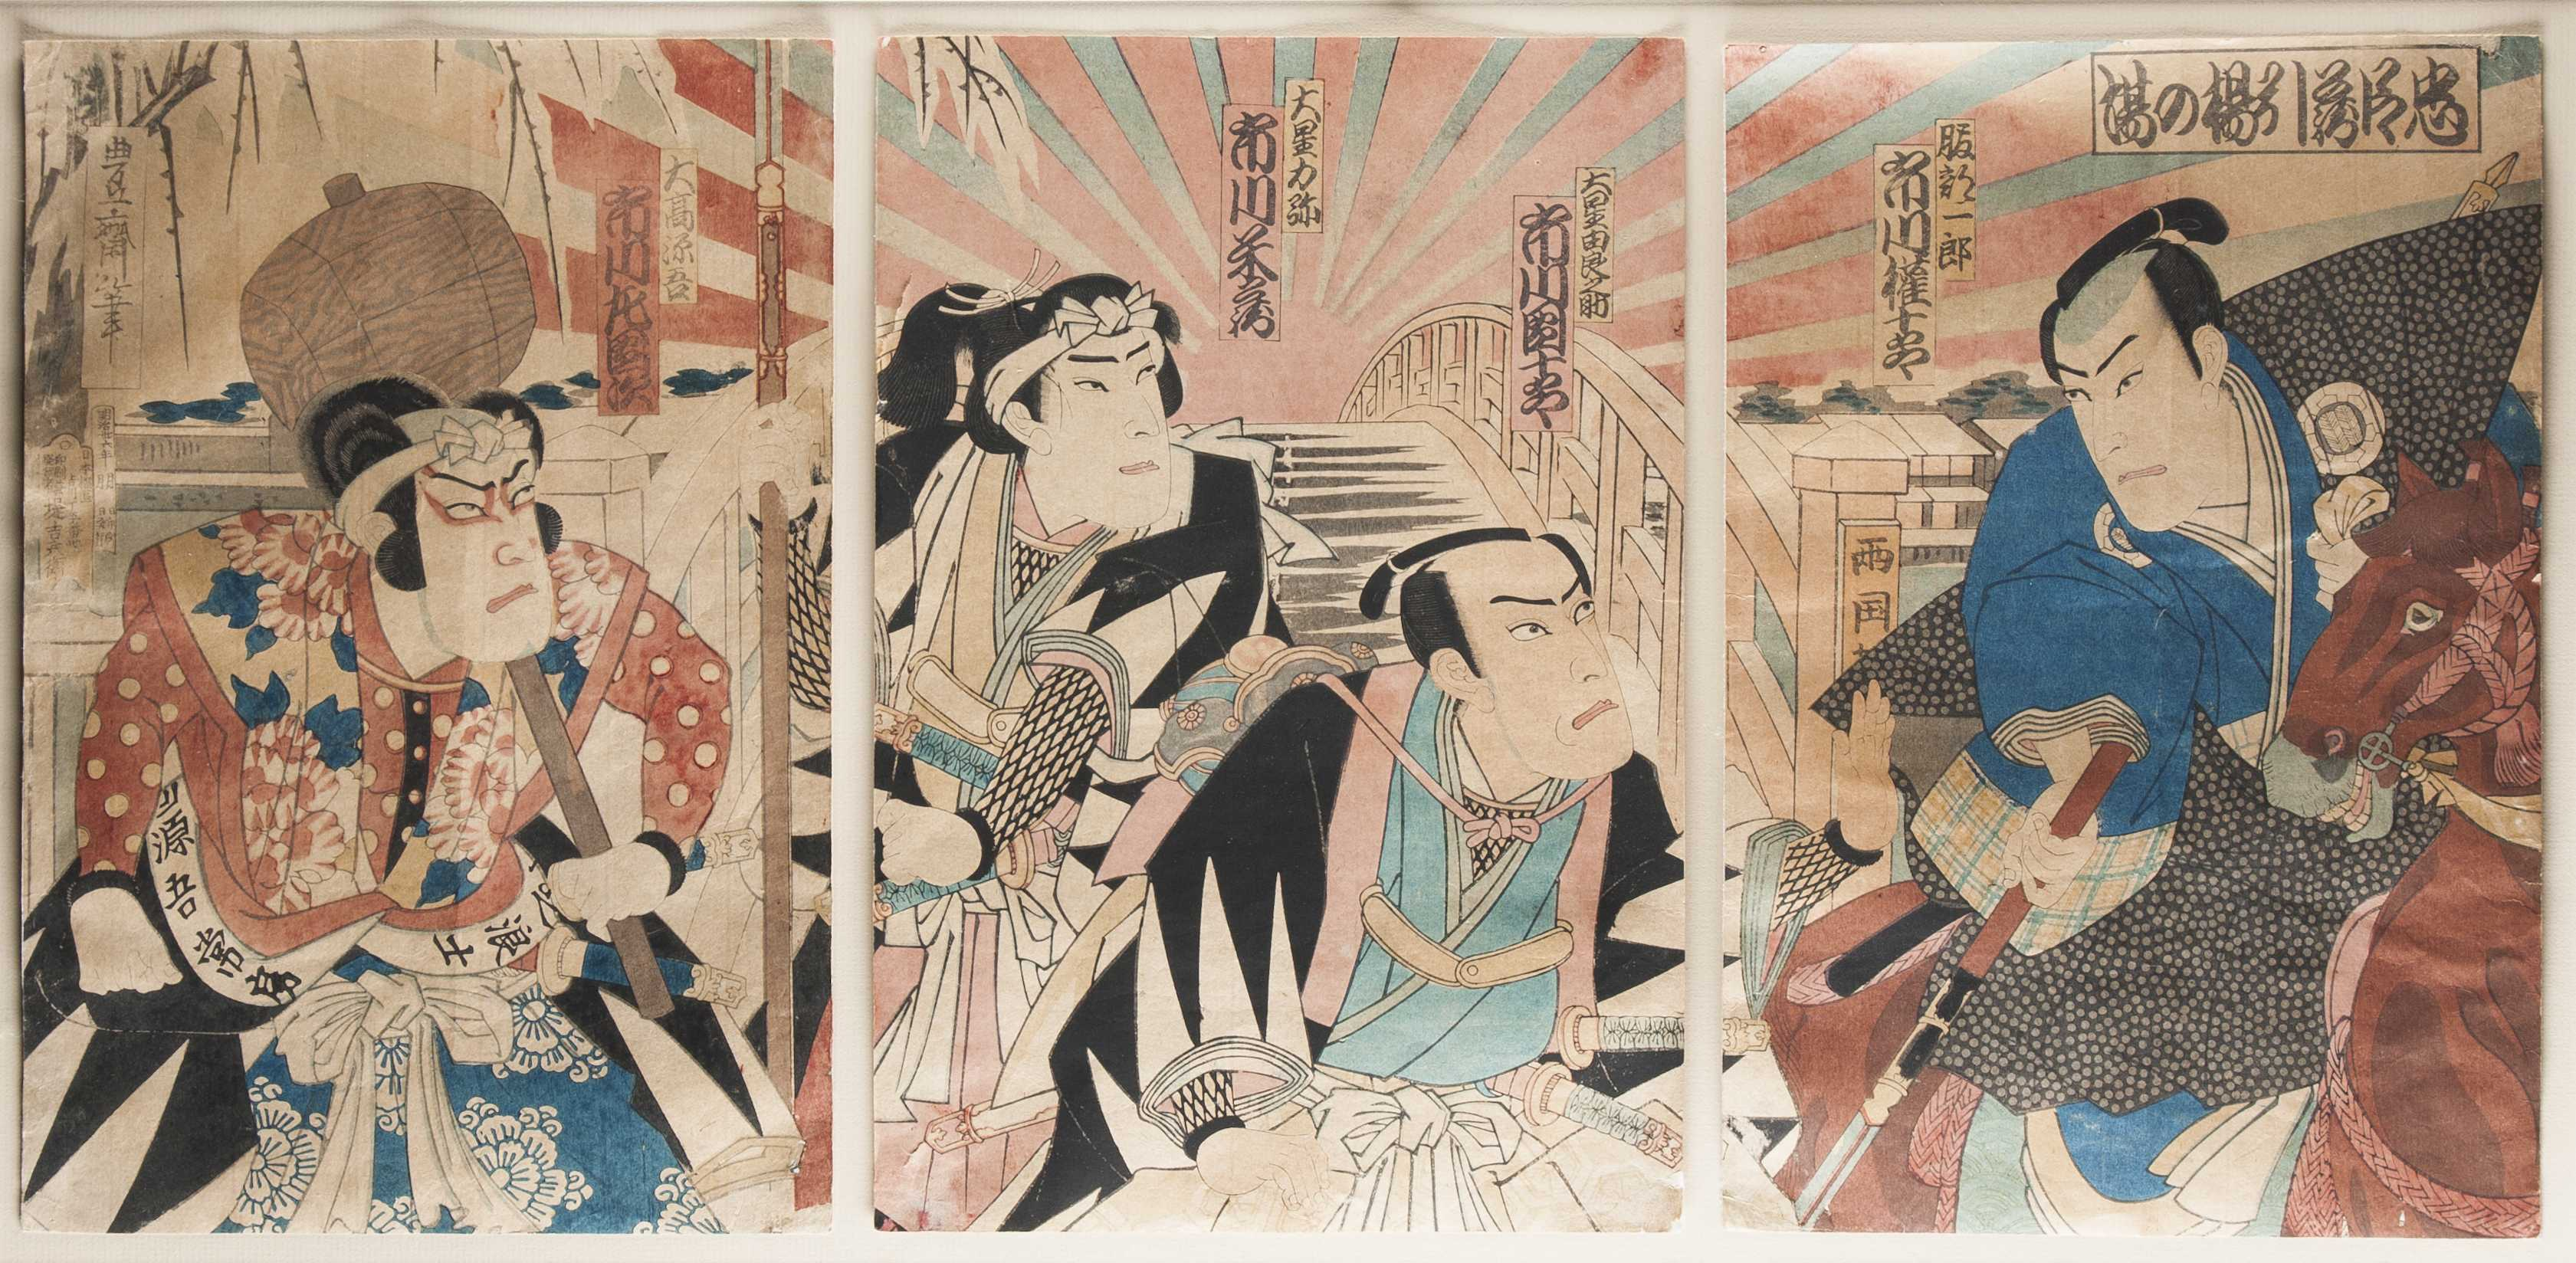 Japonisme - The Influence Of Japanese Art On Western Artists